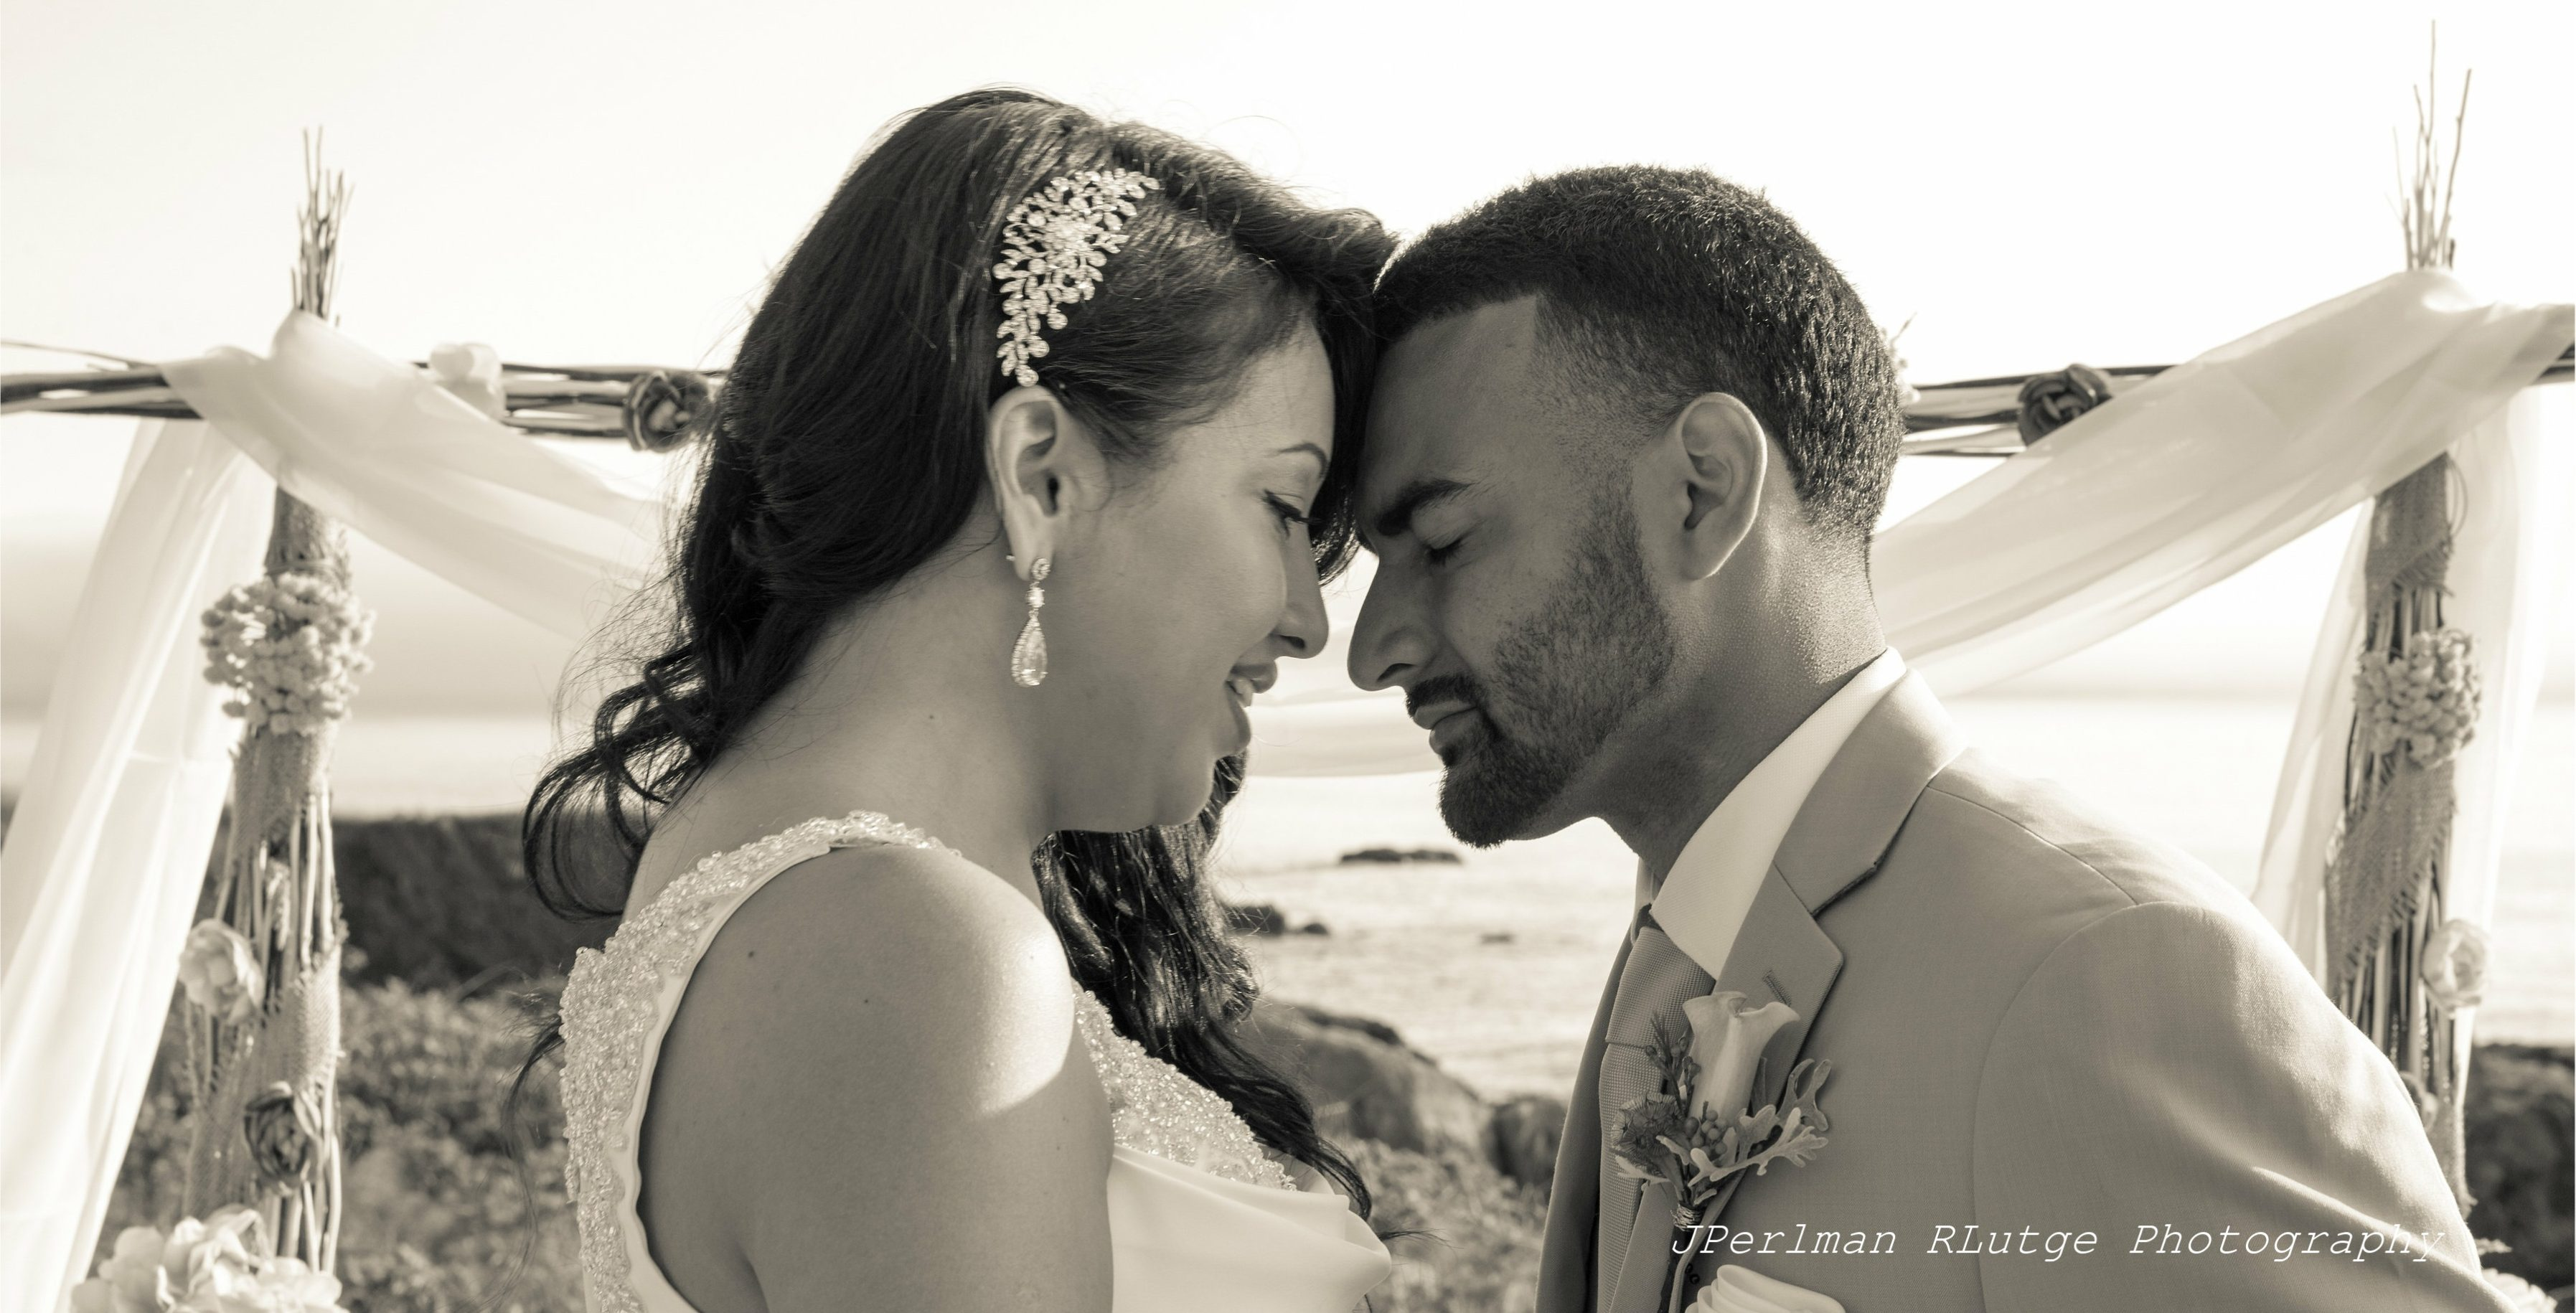 Johana and Issac, bride and groom, embrace at the beach in Westport, California shortly after their wedding by Elope Mendocino.